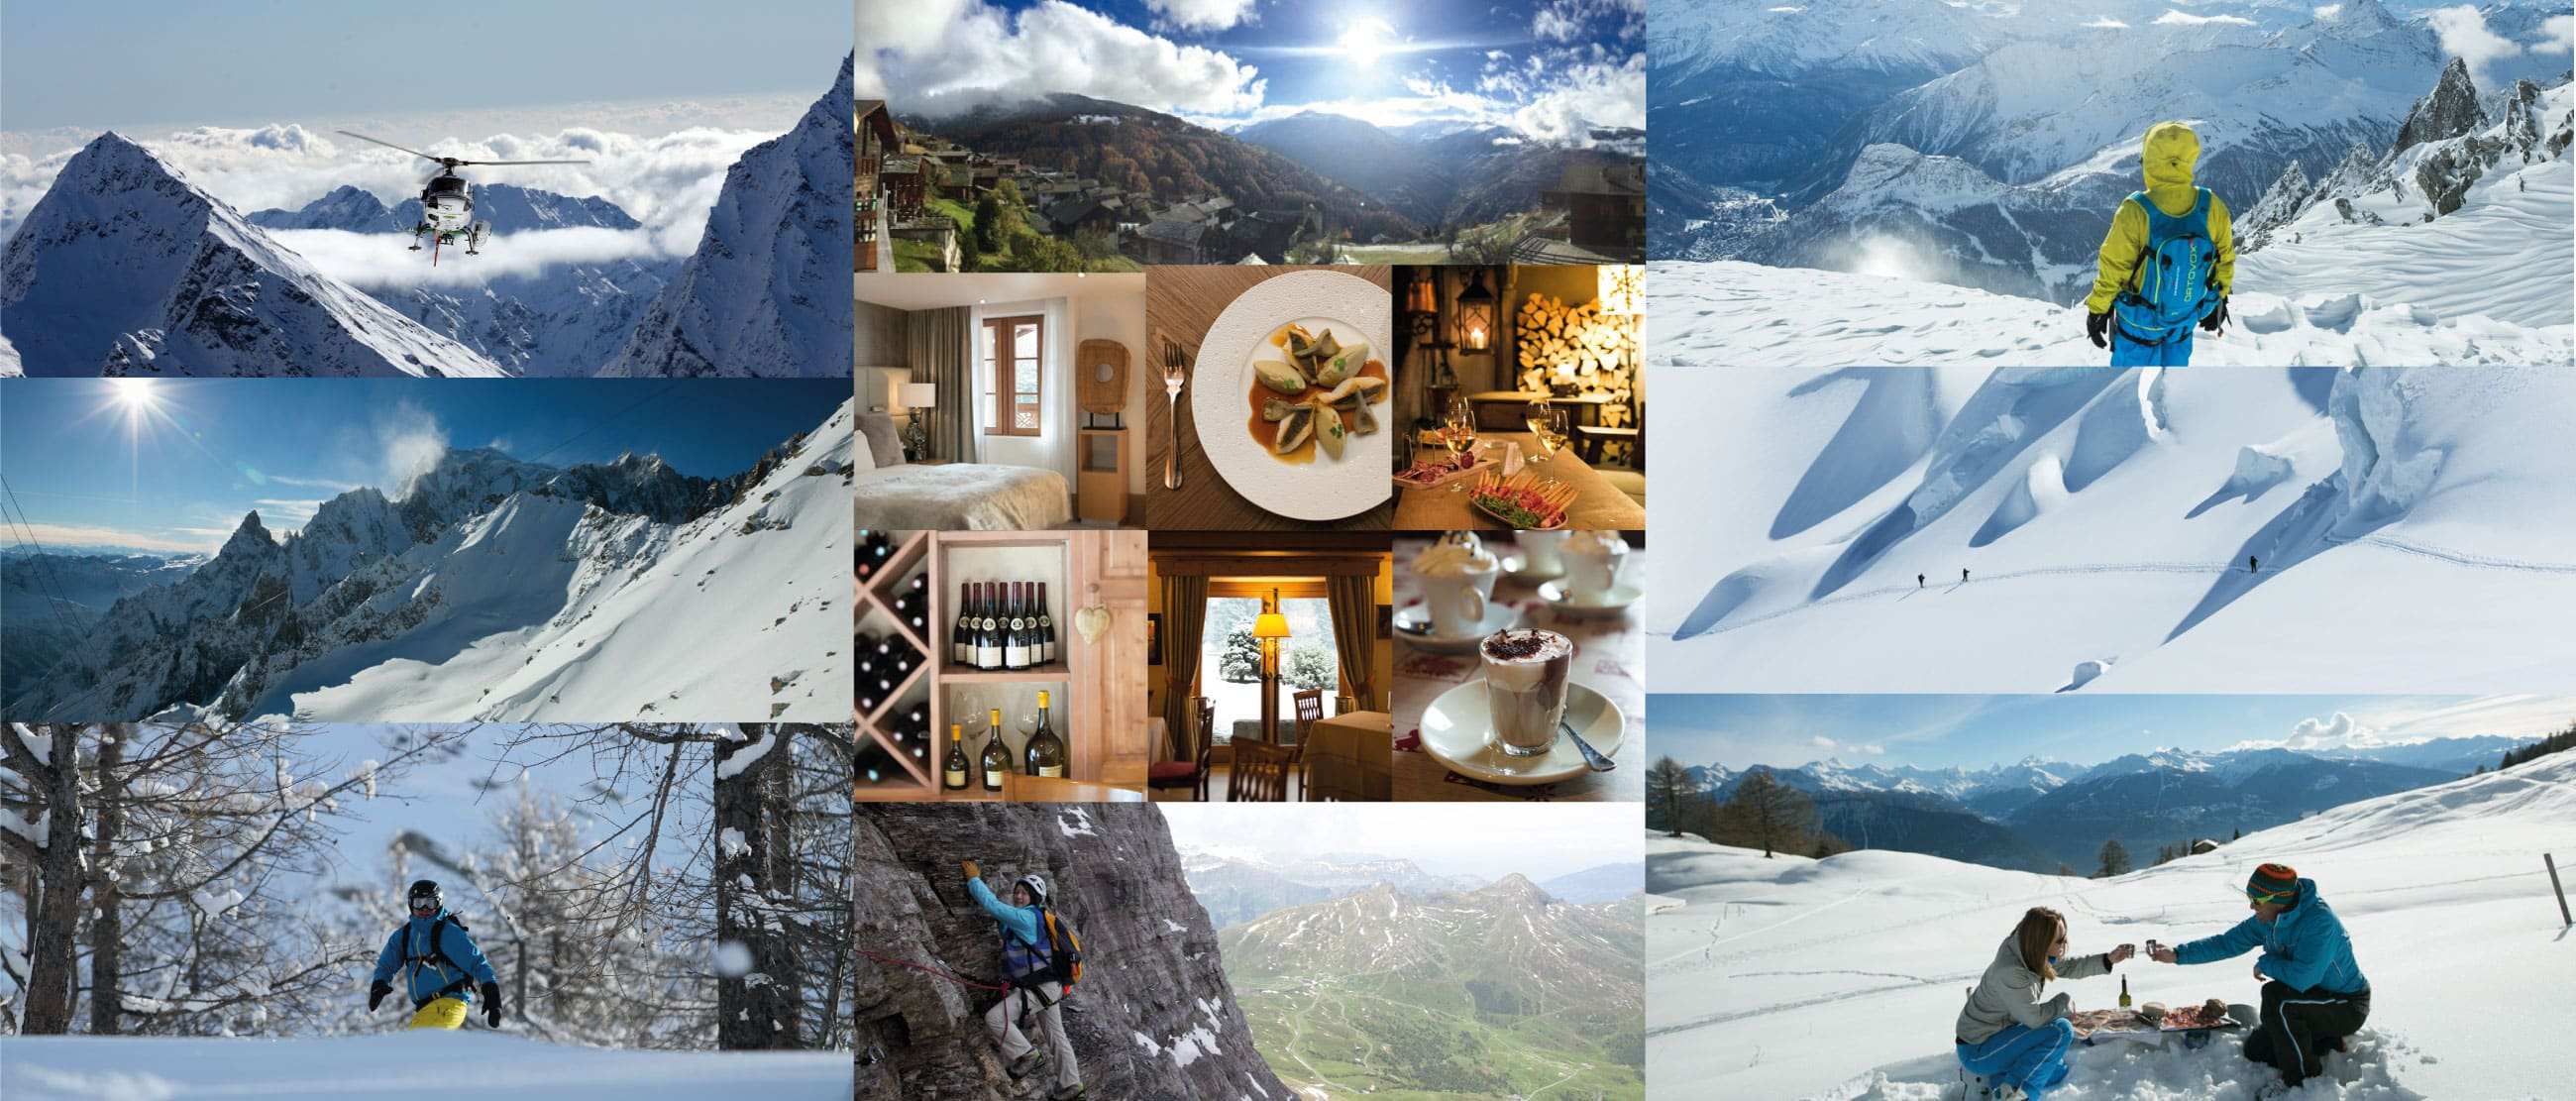 swisskisafari-home-collage-2600